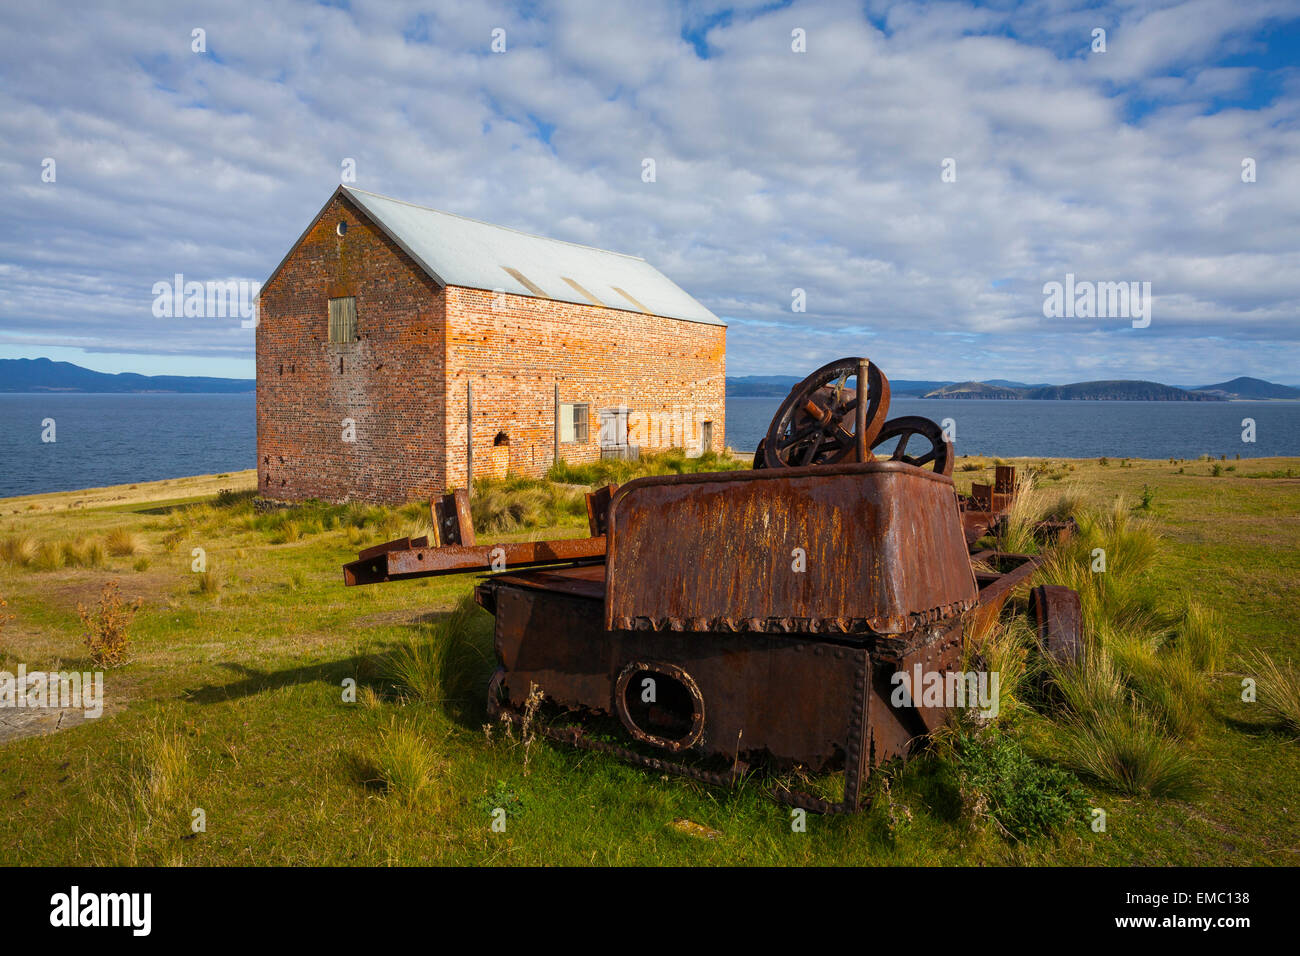 Condamner Barn (c.1844) - Maria Island National Park - Tasmanie - Australie Photo Stock